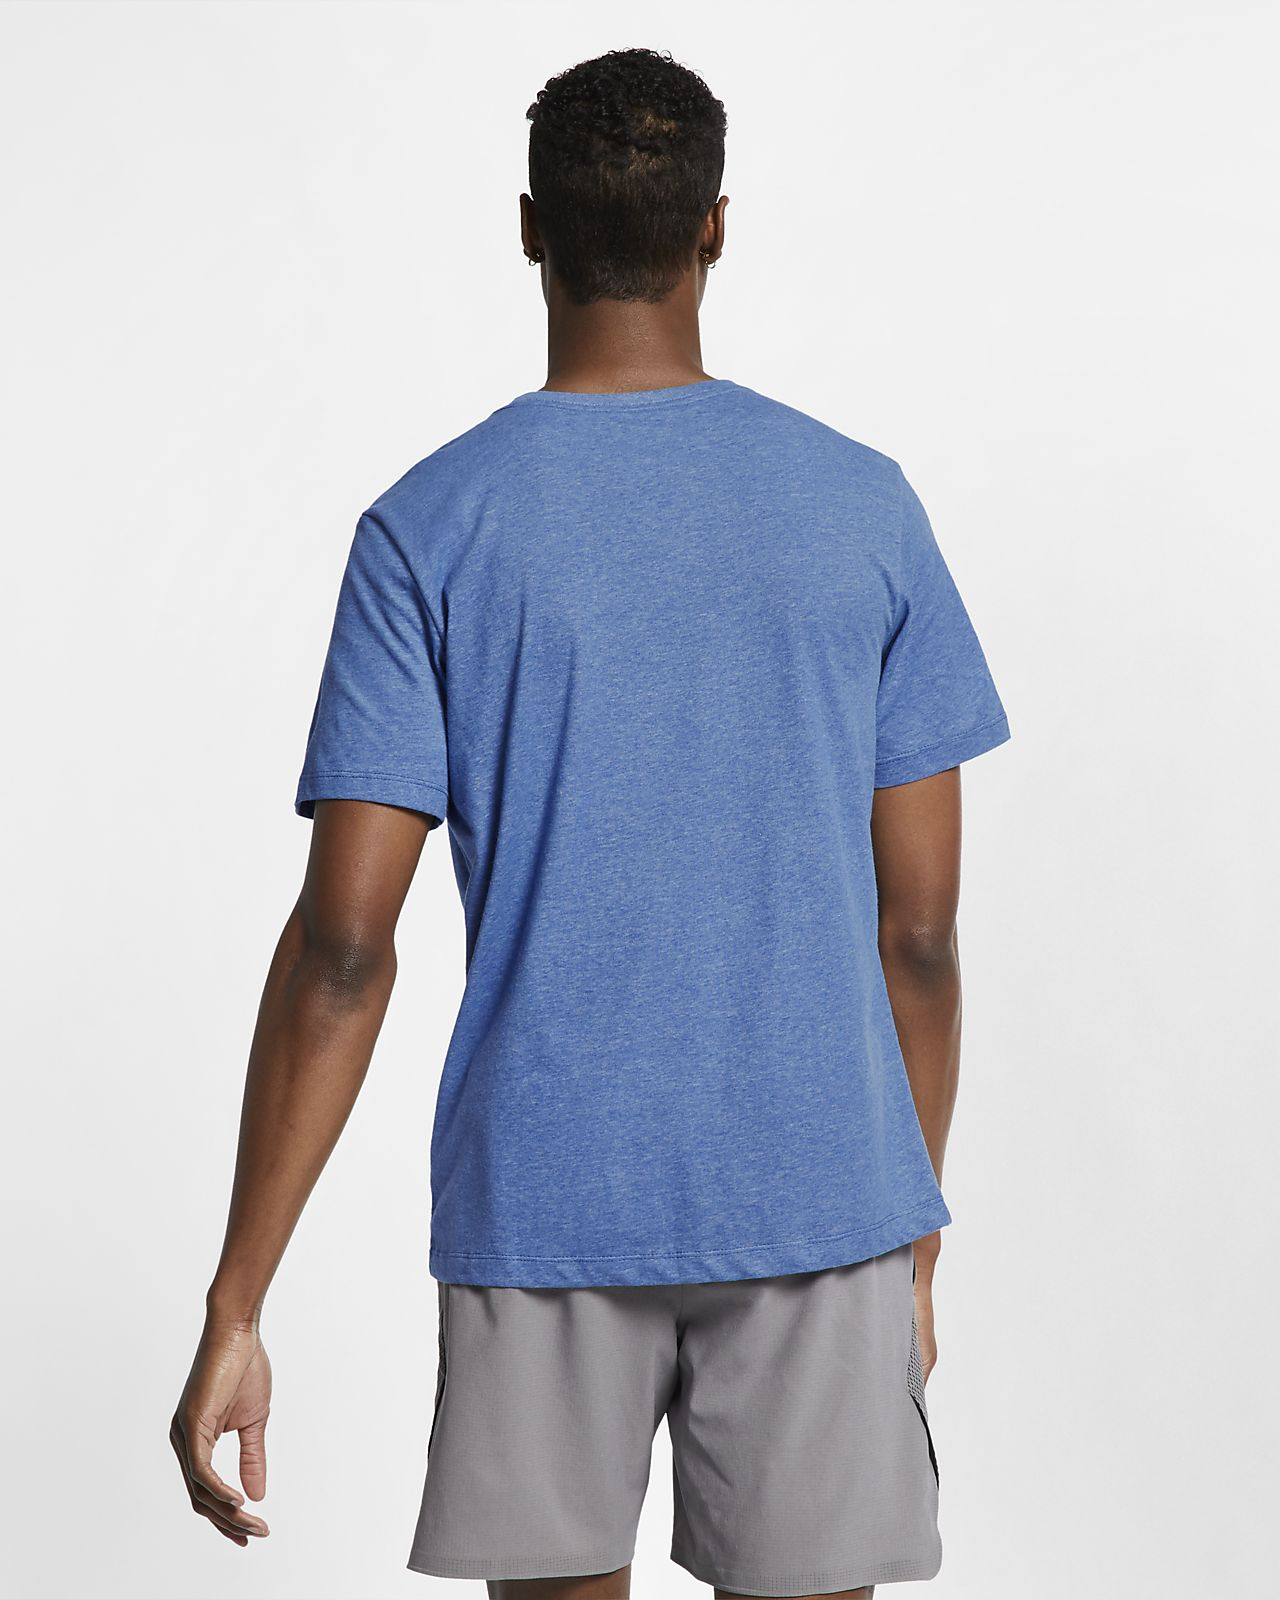 7ce71ddfb183 Nike Dri-FIT Men s Training T-Shirt. Nike.com